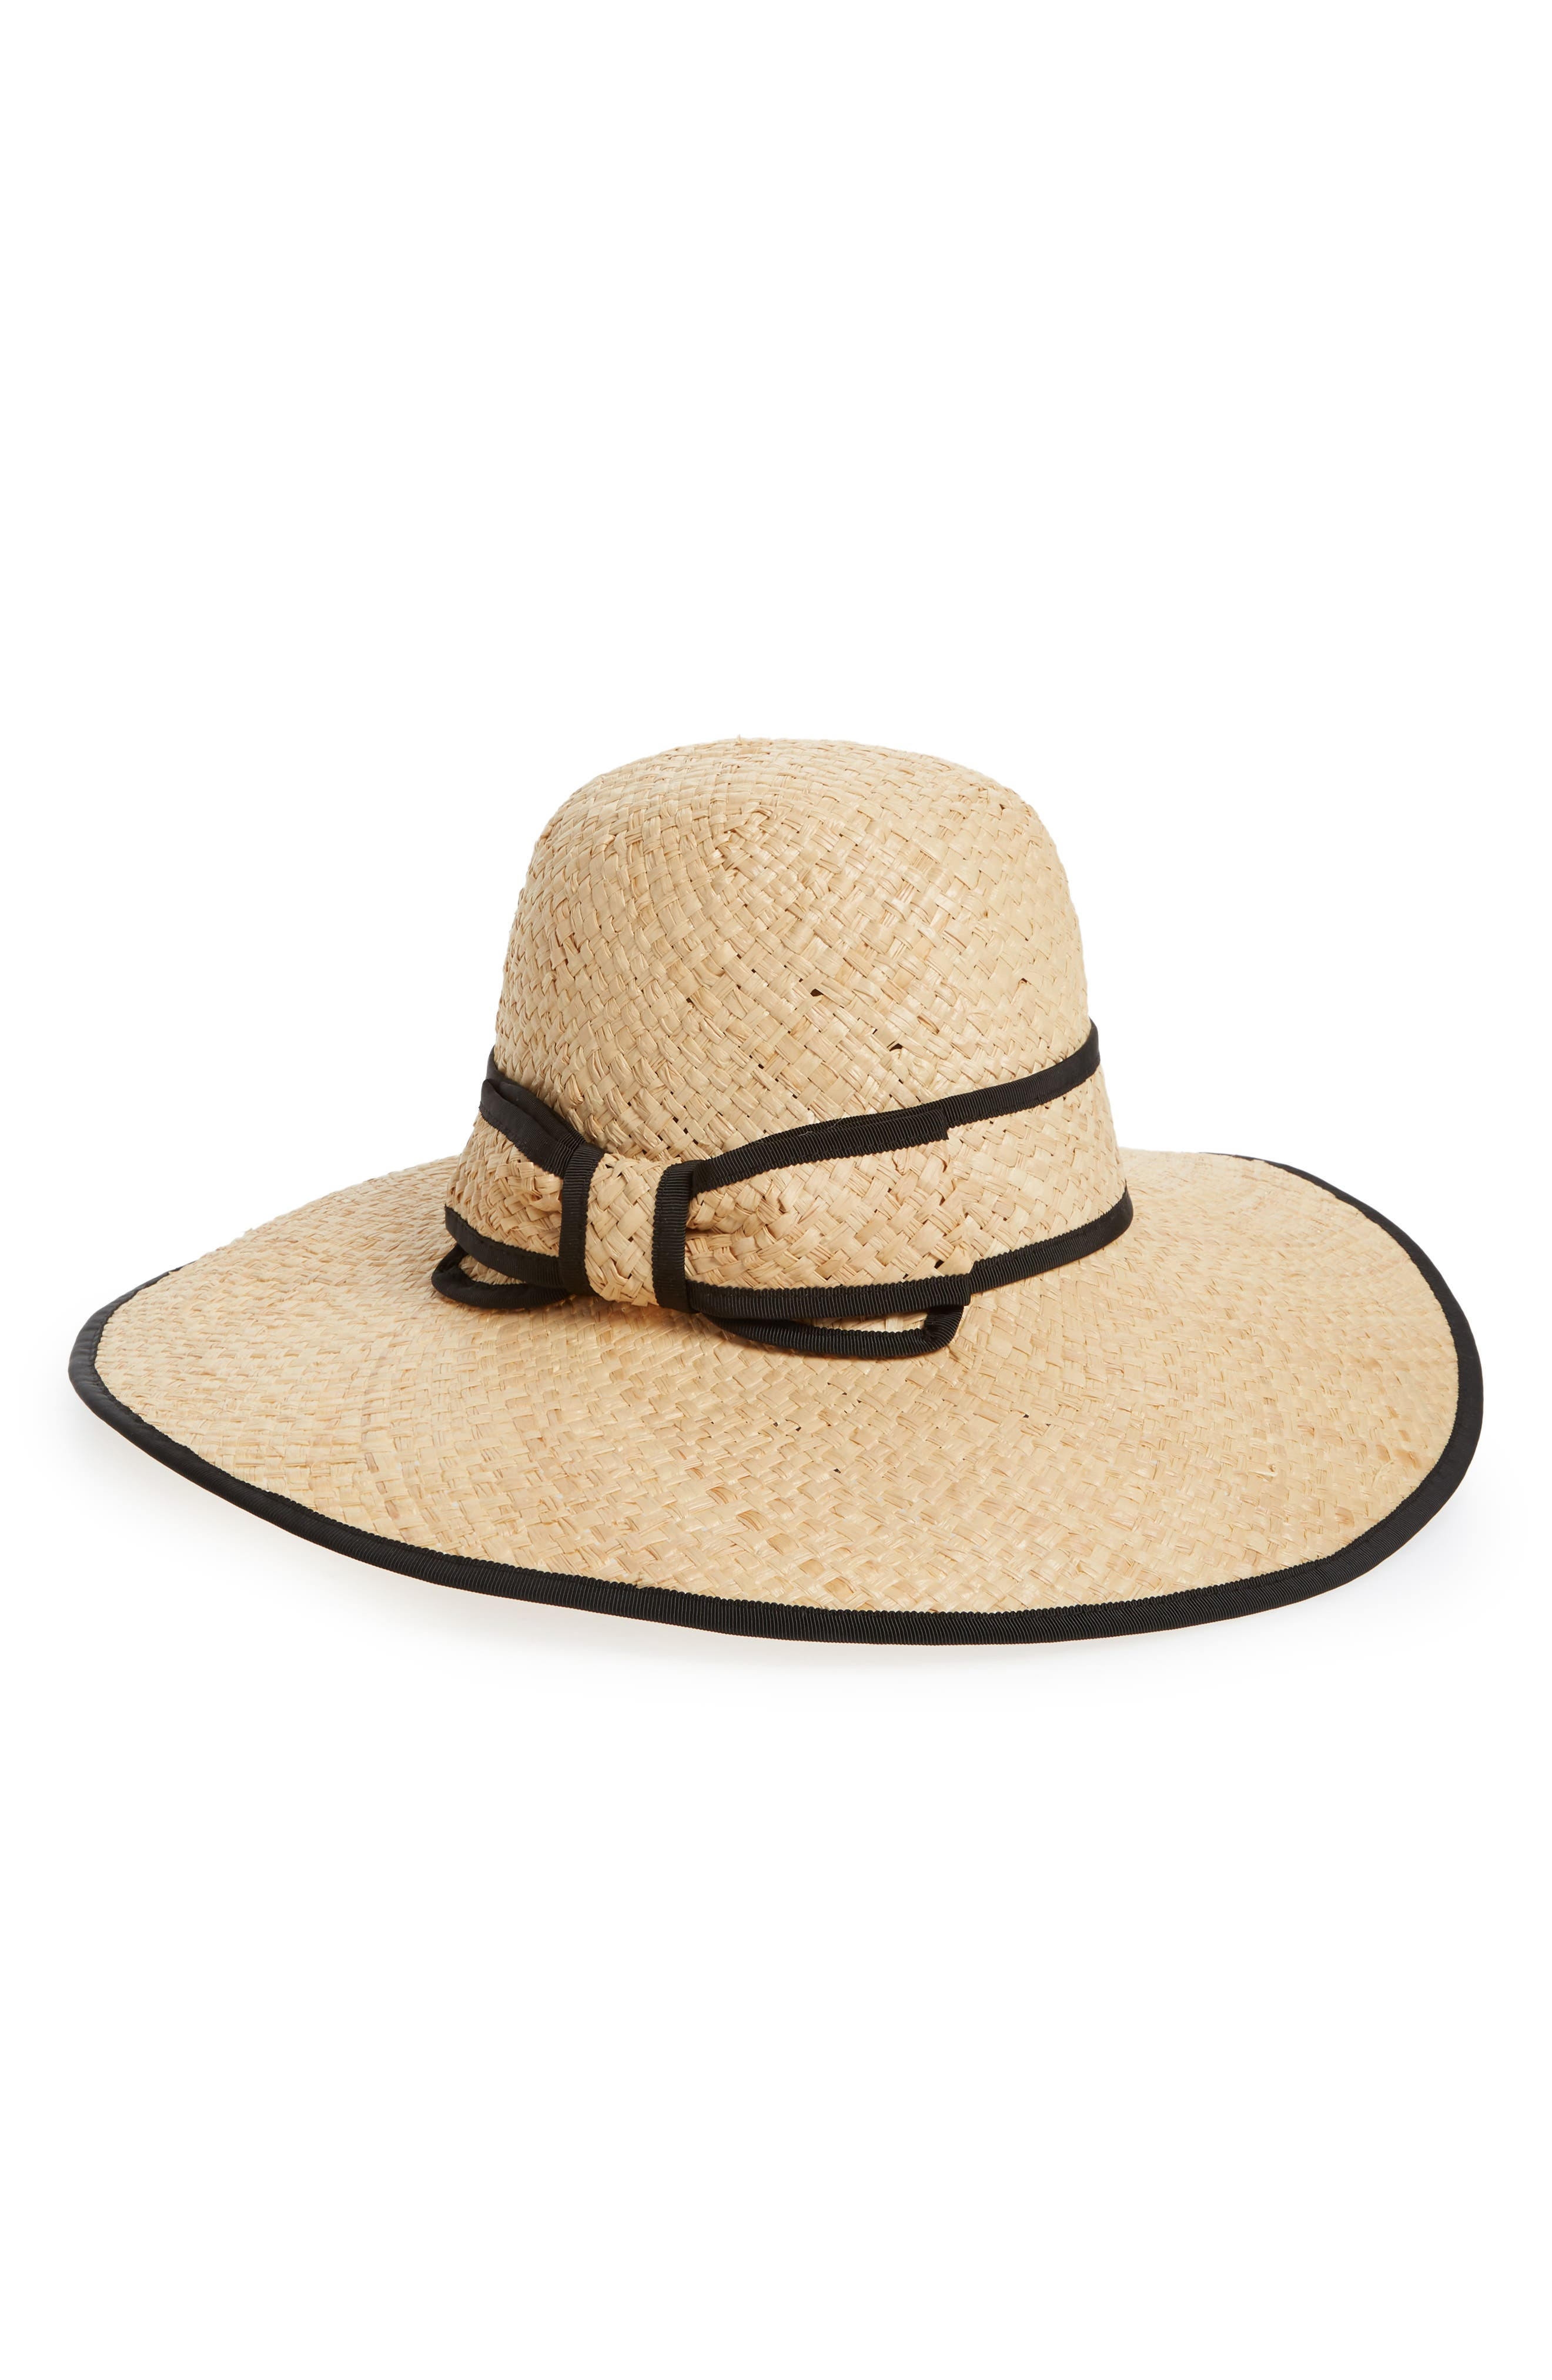 olive drive straw hat,                         Main,                         color, 200